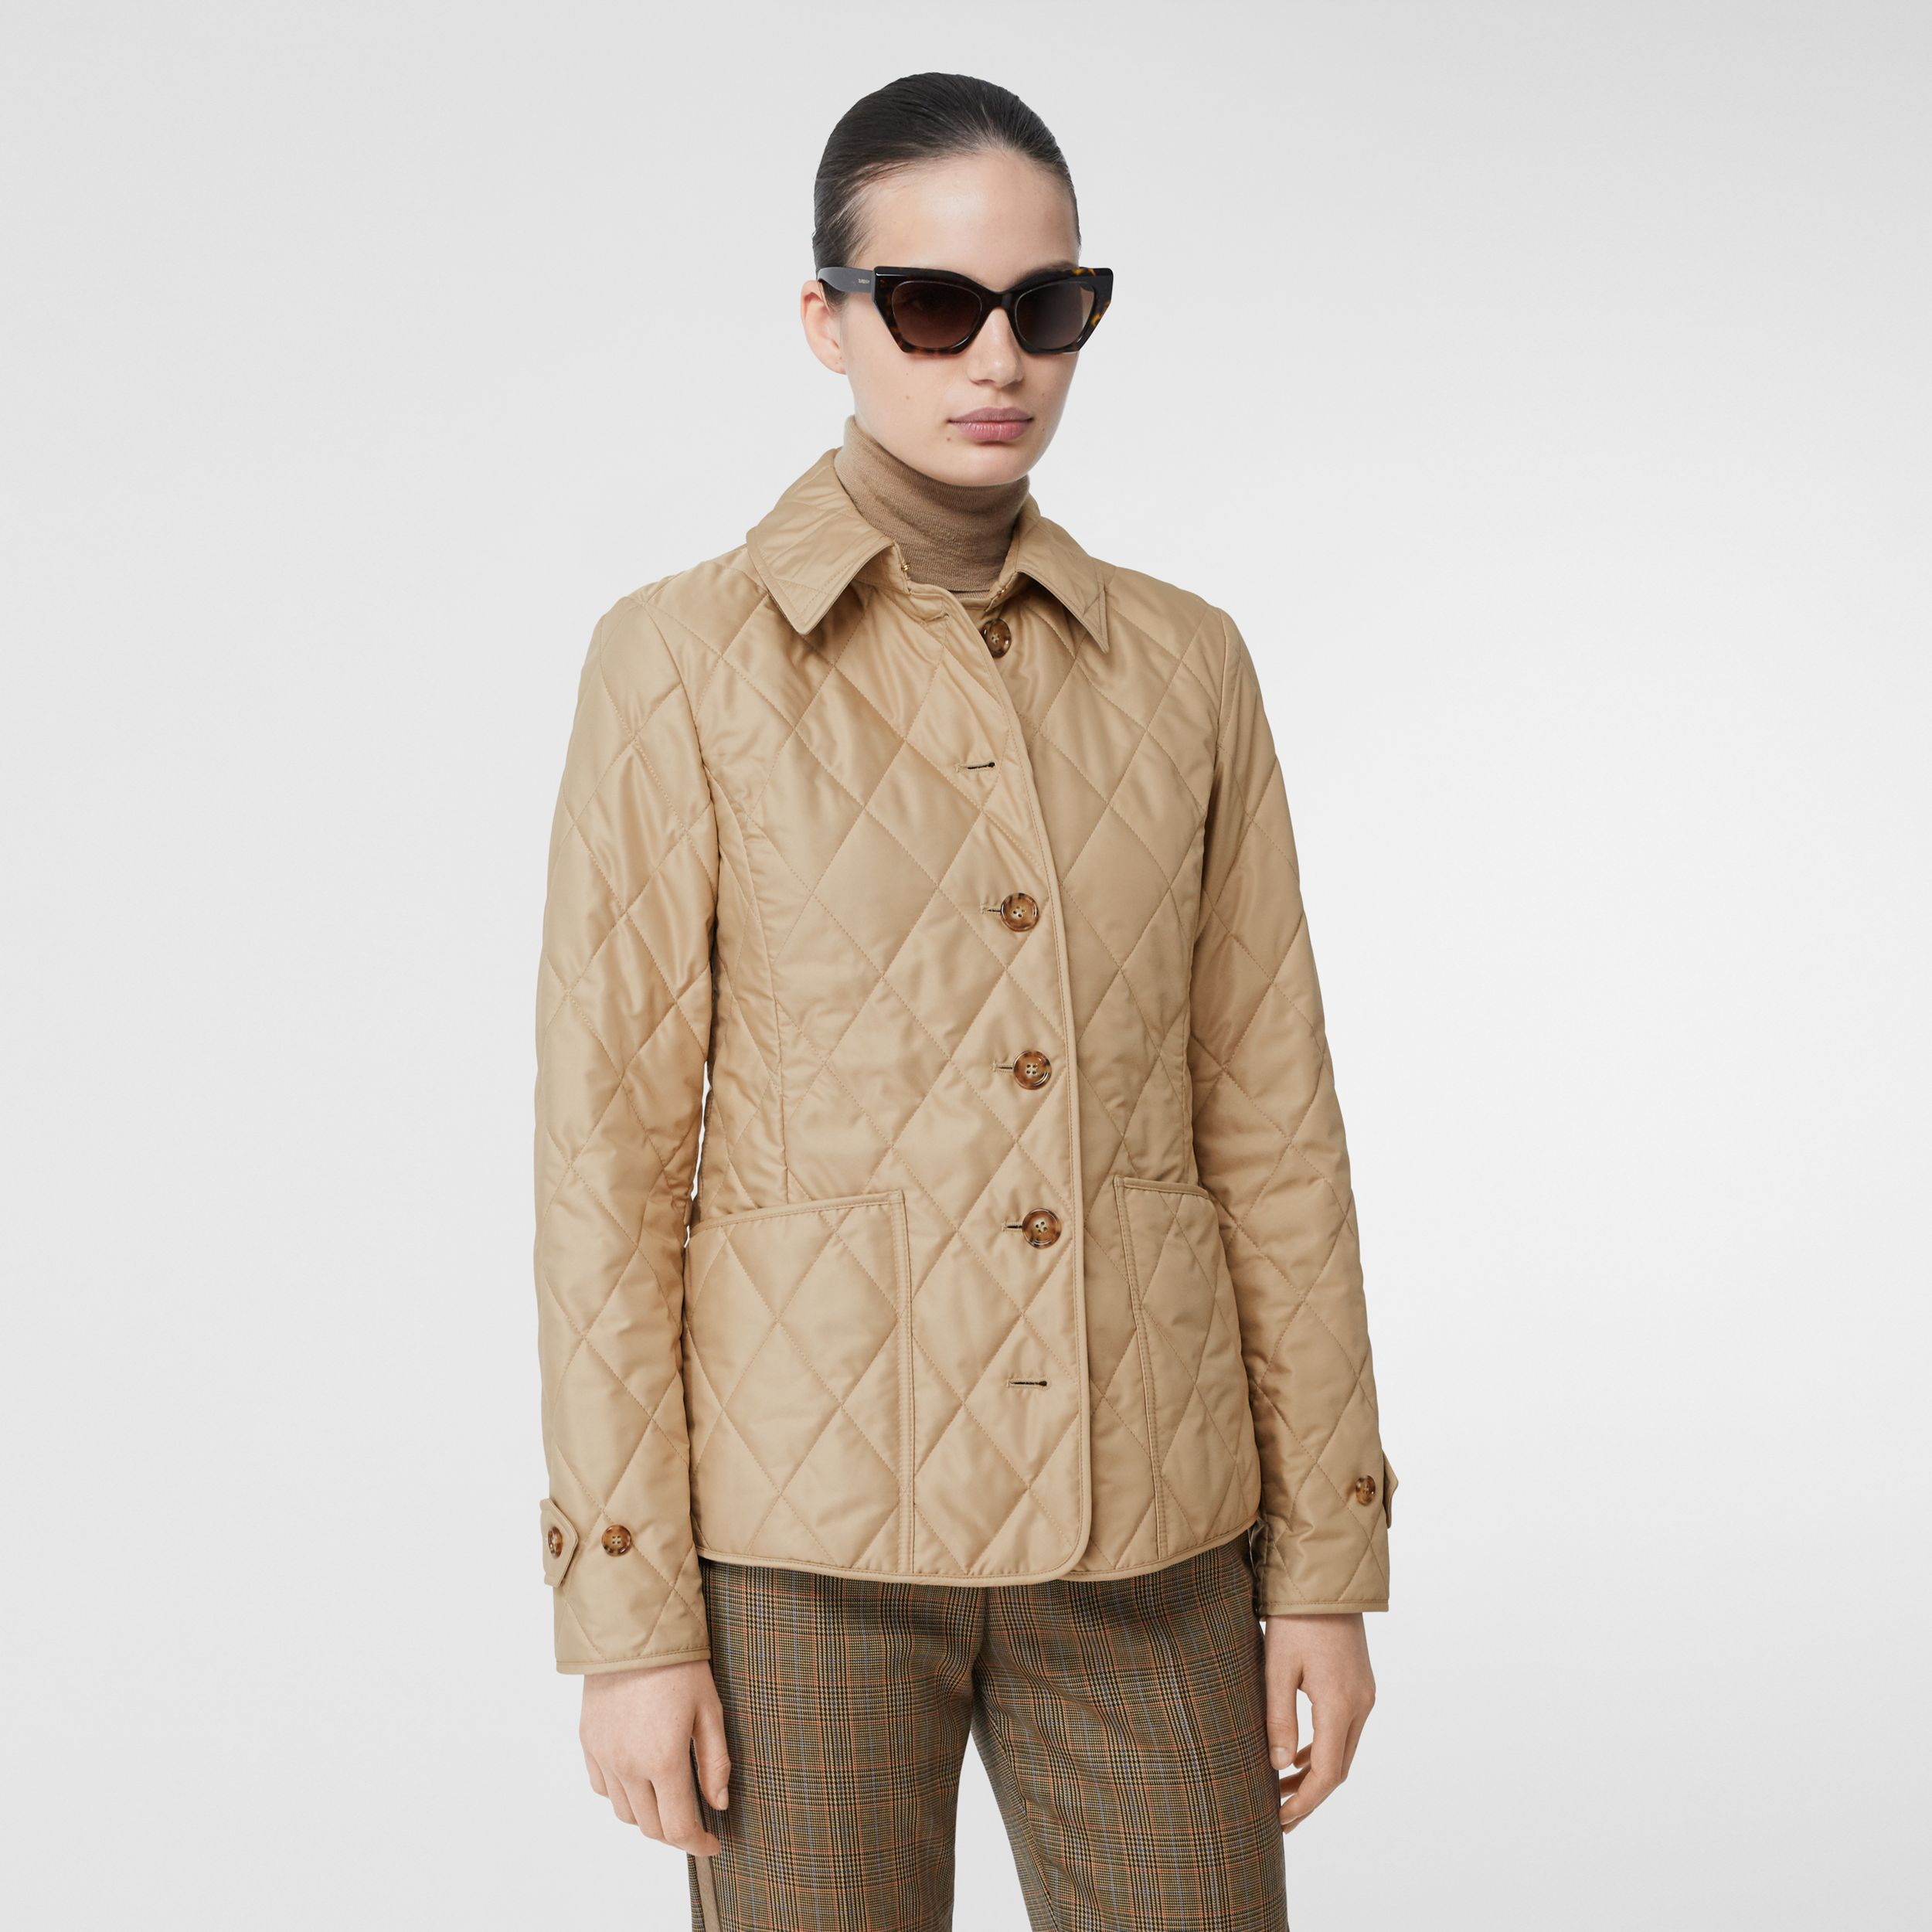 Diamond Quilted Thermoregulated Jacket in New Chino - Women | Burberry - 1